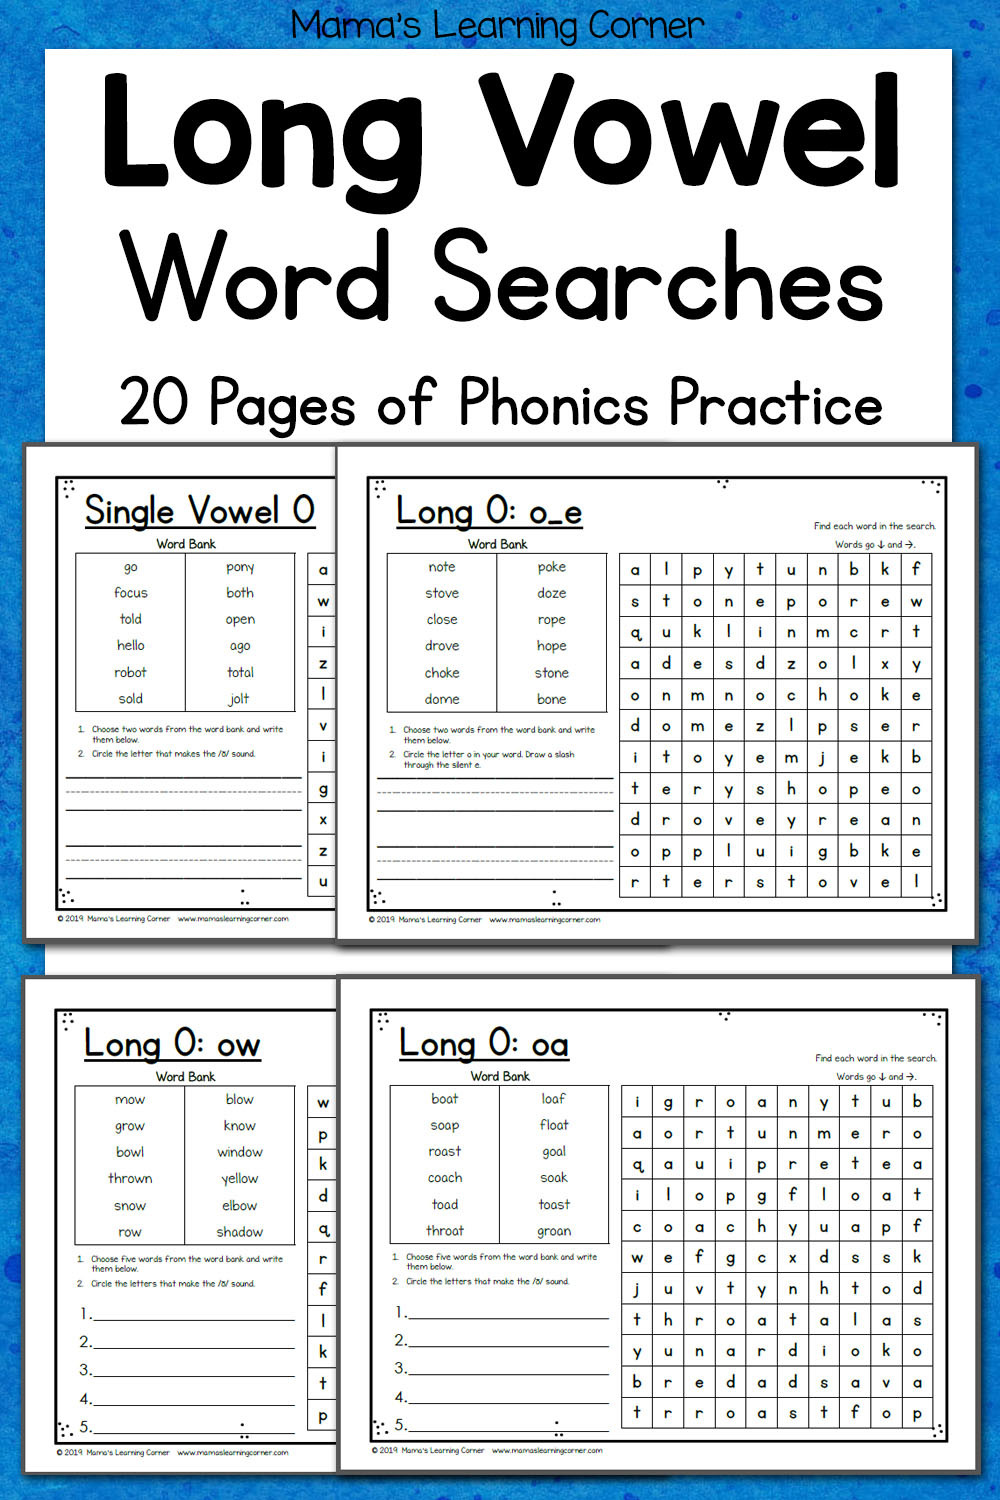 Free Printable Long Vowel Worksheets Long Vowel Word Search Puzzles Mamas Learning Corner